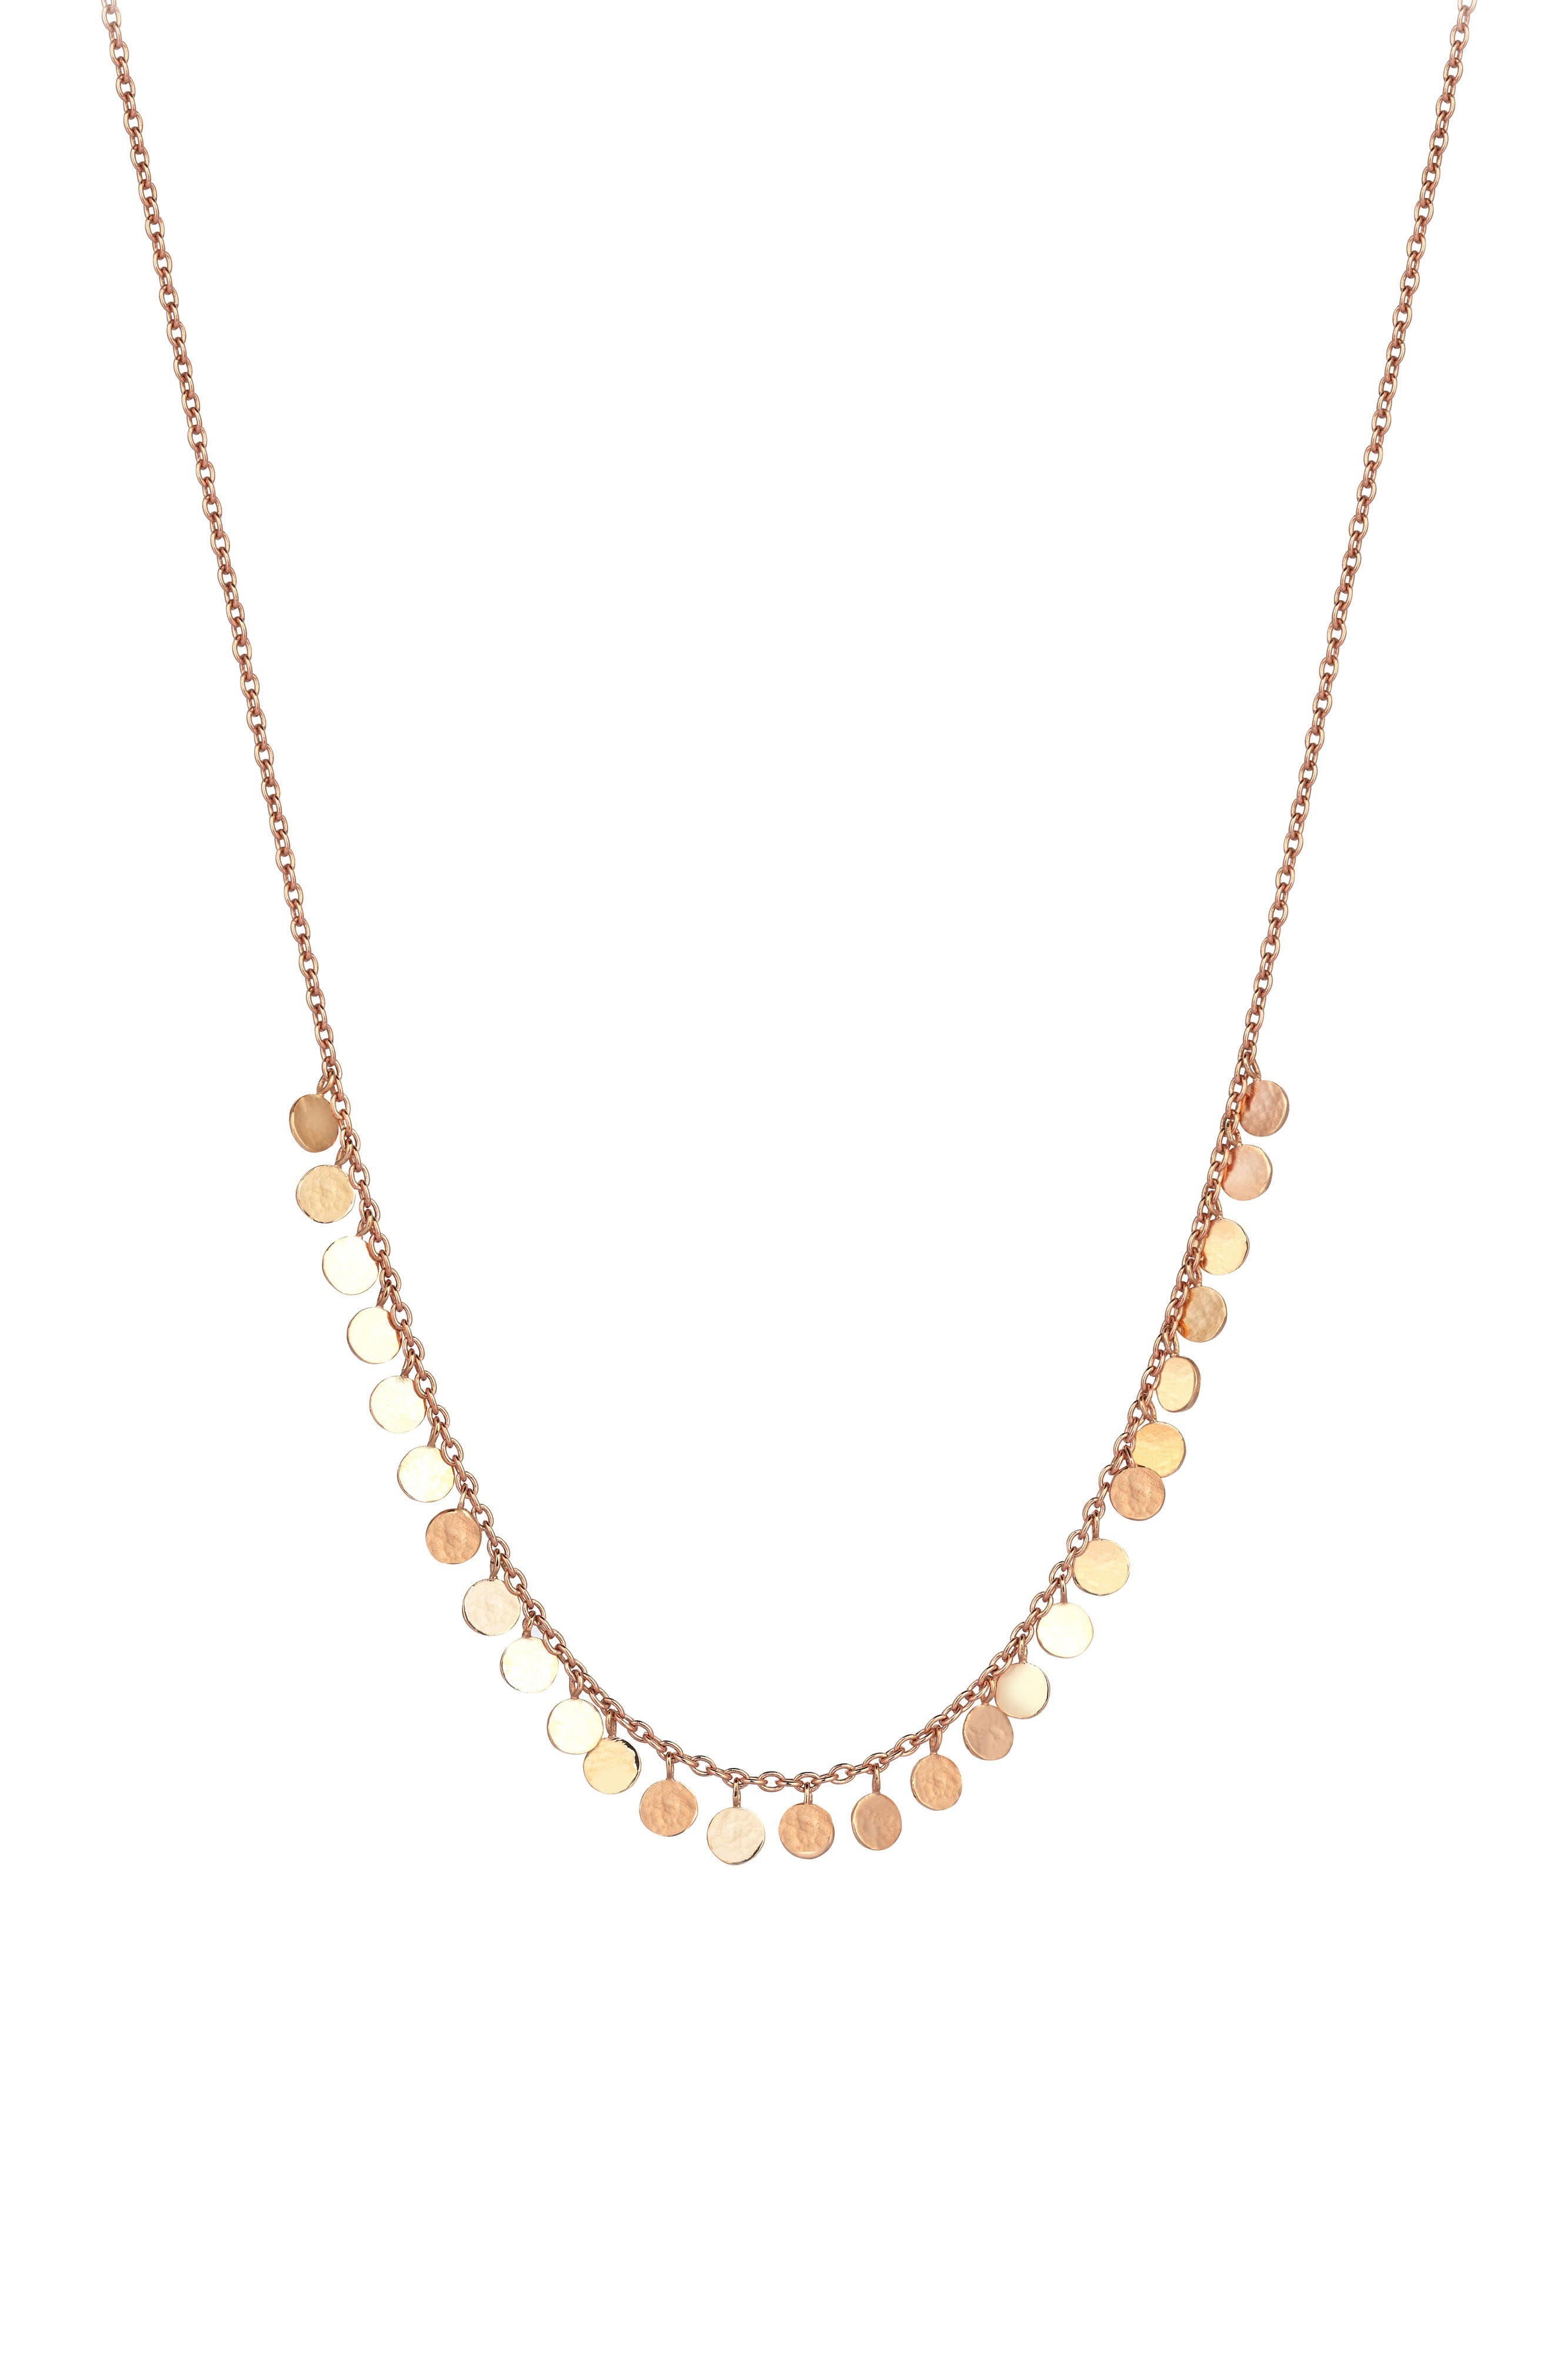 Main Image - Kismet by Milka Diamond Pendant Necklace